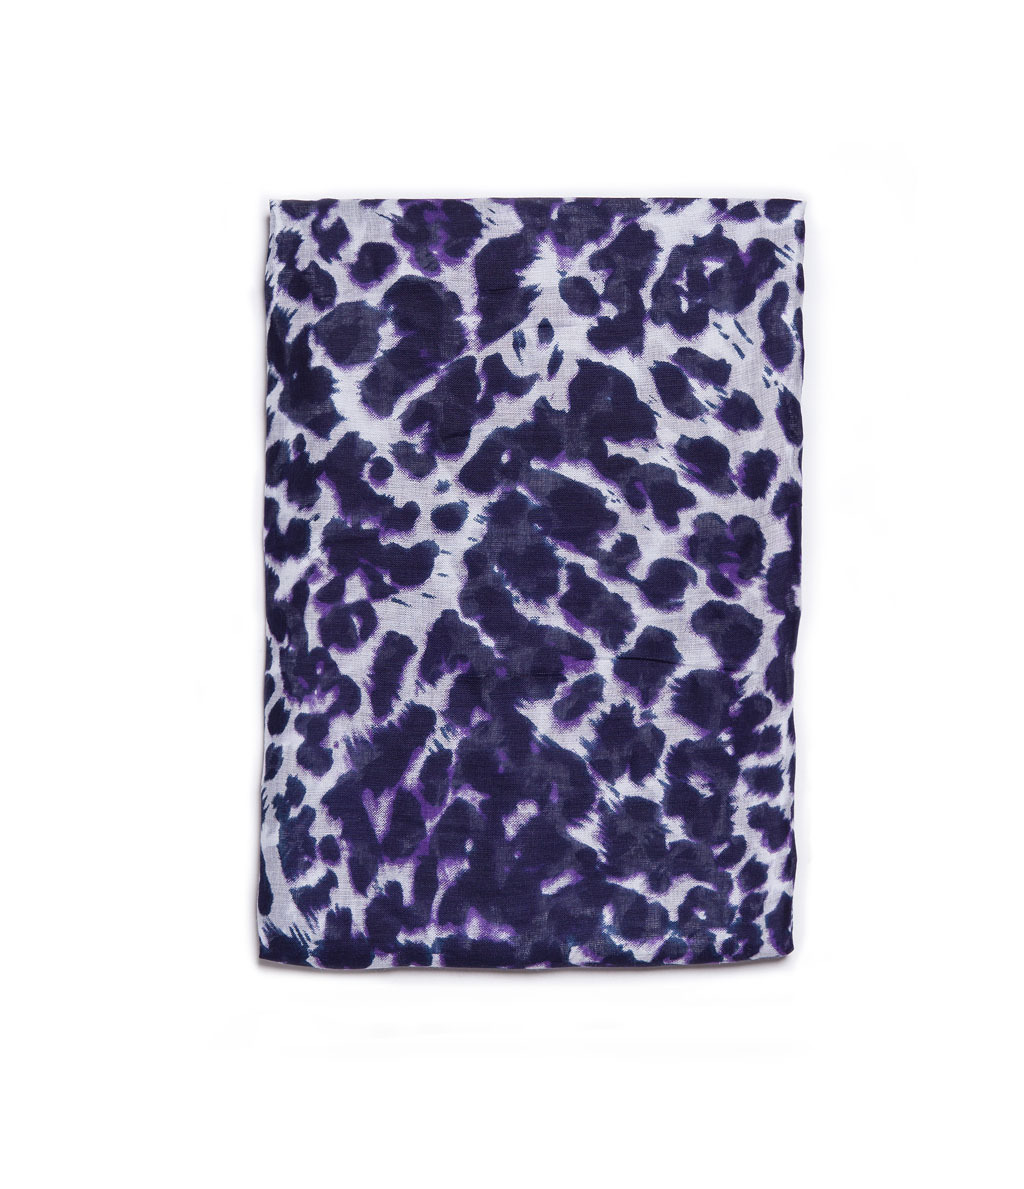 Leopard Print Scarf - predominant colour: purple; secondary colour: lilac; occasions: casual, work, occasion; style: regular; size: standard; material: fabric; pattern: animal print; trends: playful prints; season: a/w 2013